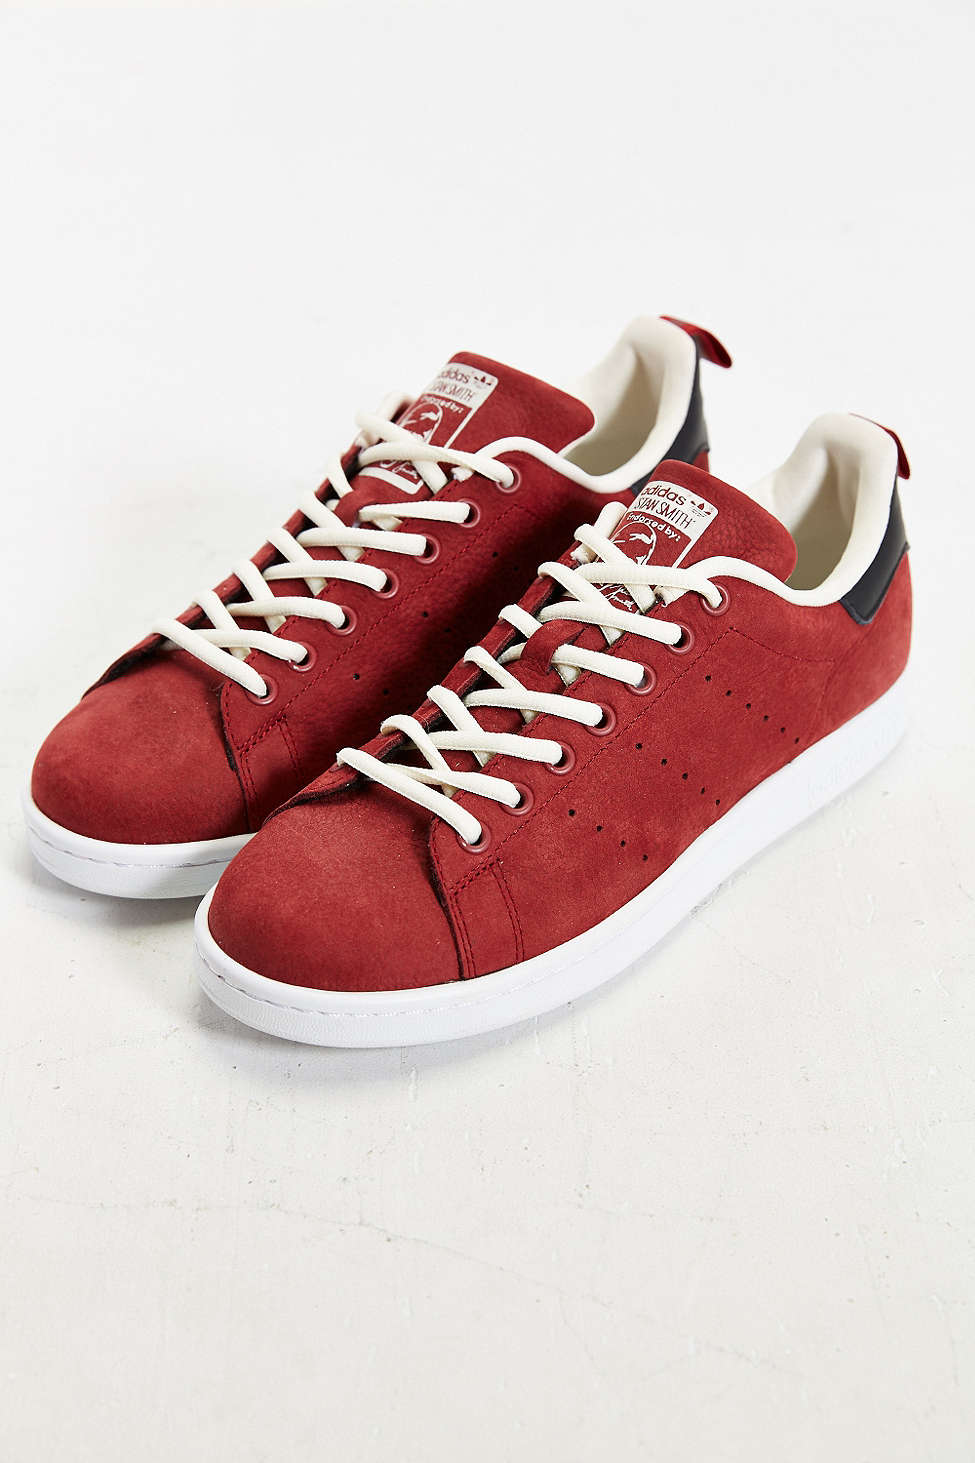 Adidas Stan Smith Shoes Urban Outfitters